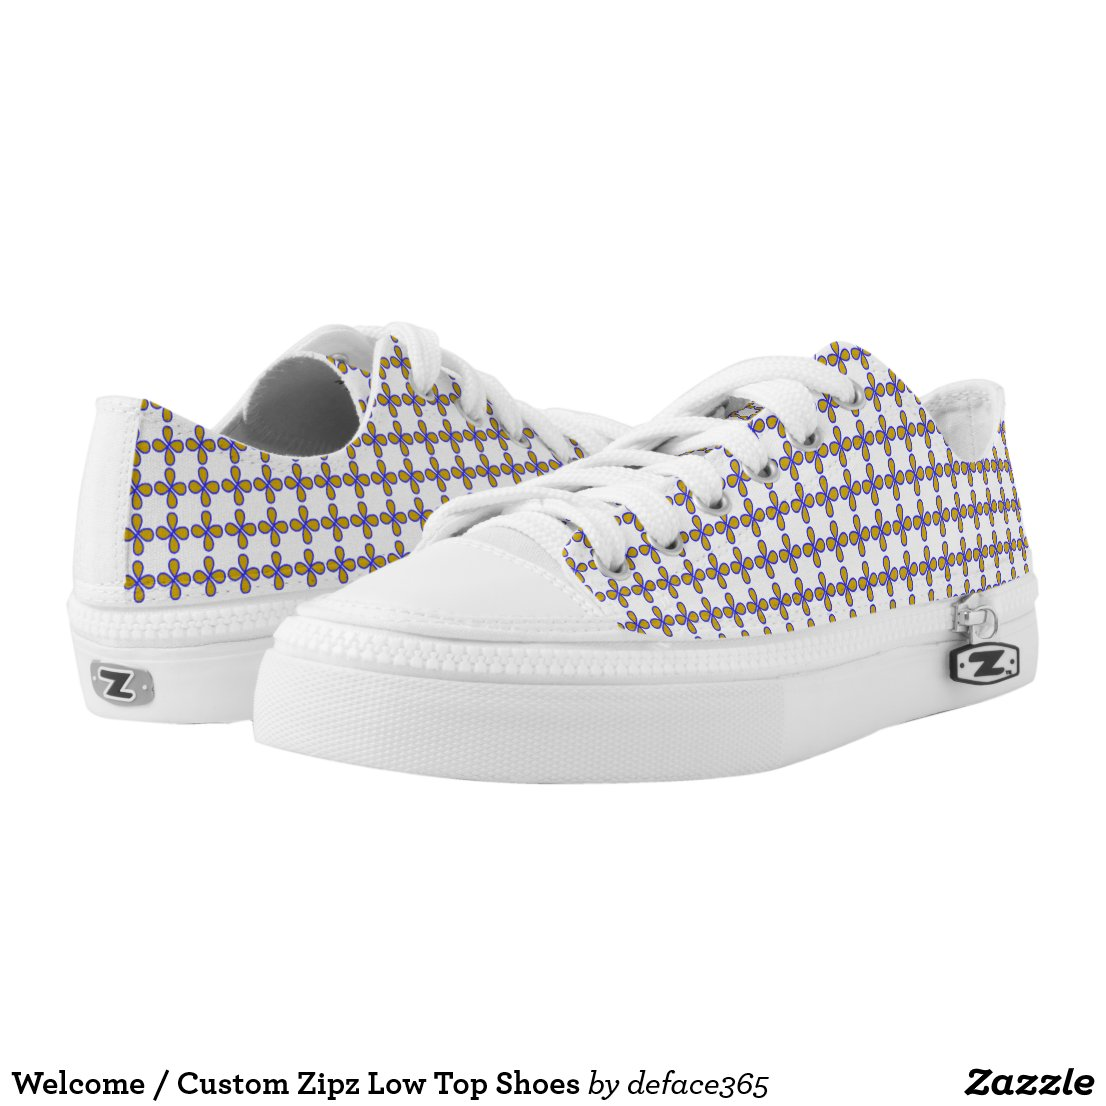 Welcome / Custom Zipz Low Top Shoes Printed Shoes